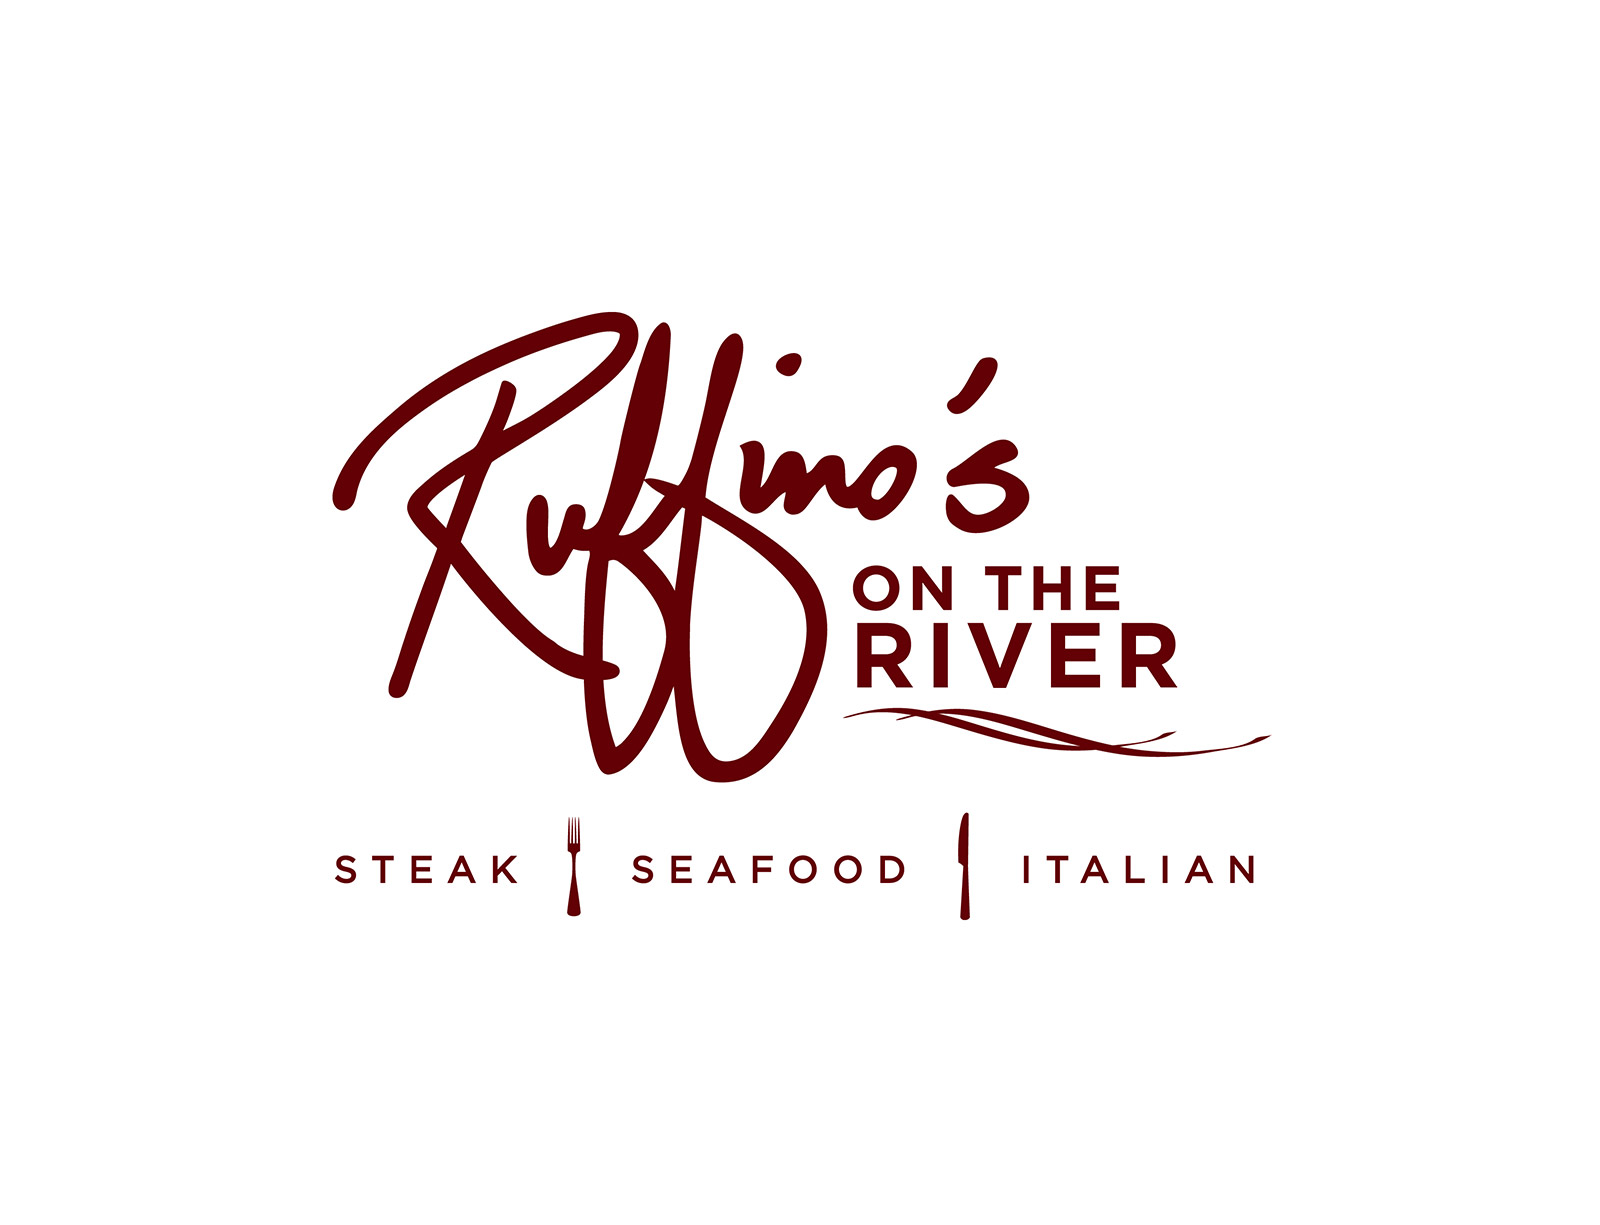 Ruffinos-on-the-River.jpg